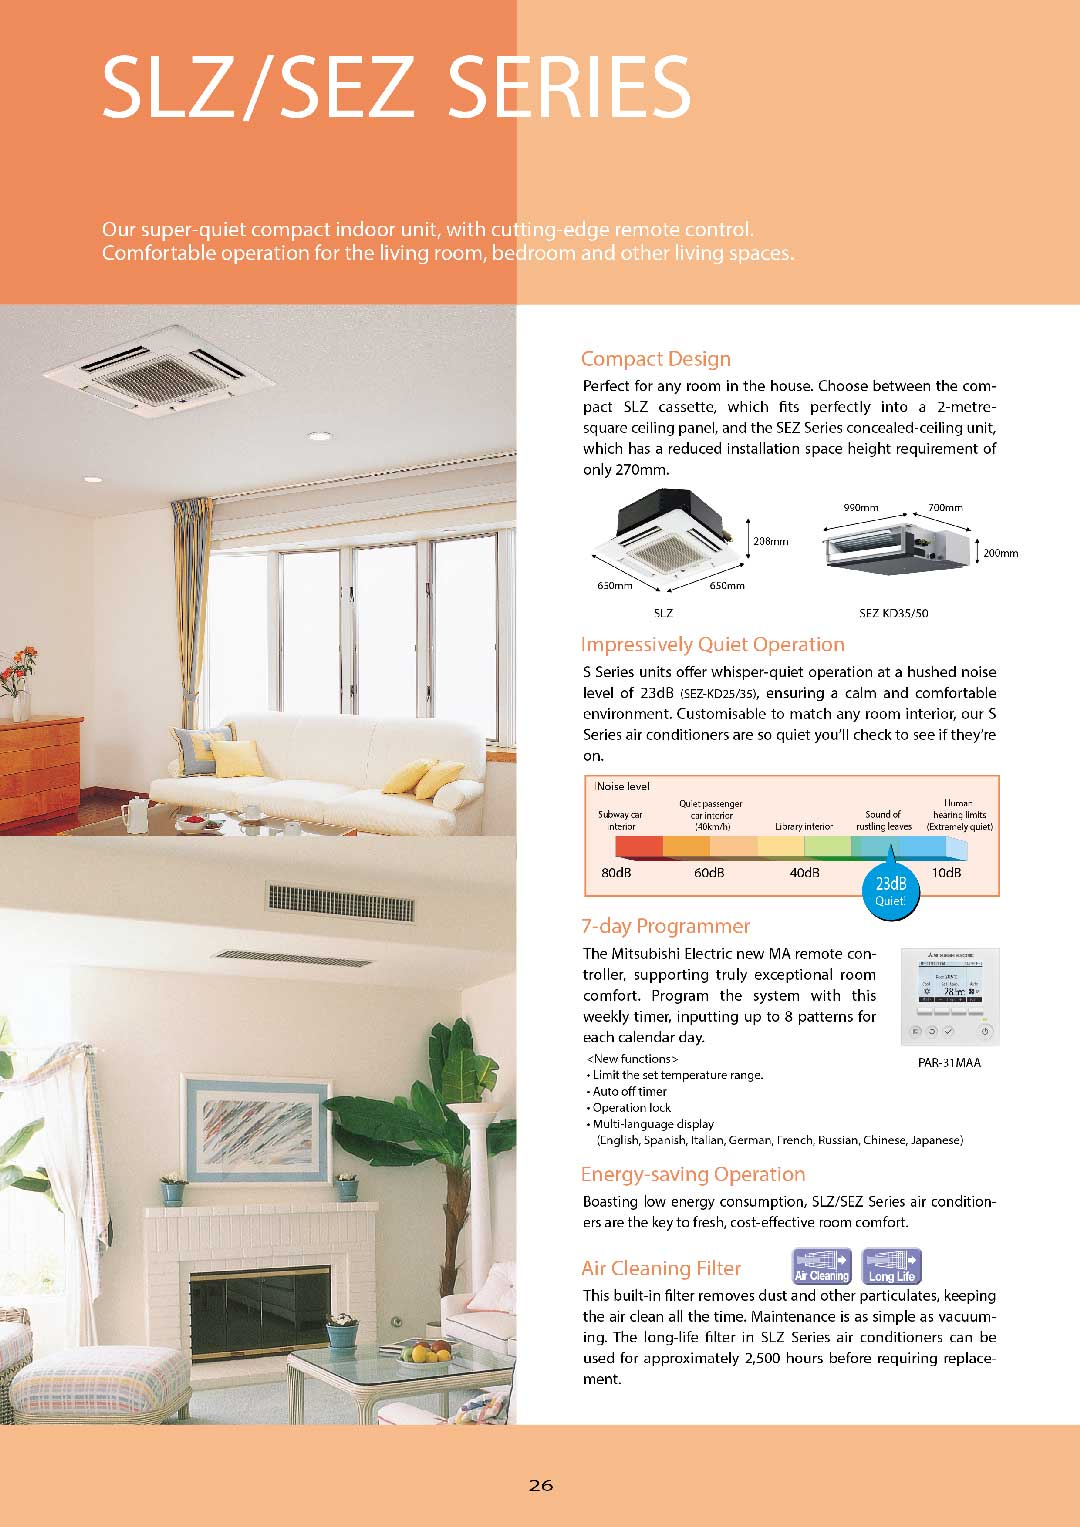 Mitsubishi-Air-Conditioning-Systems-27